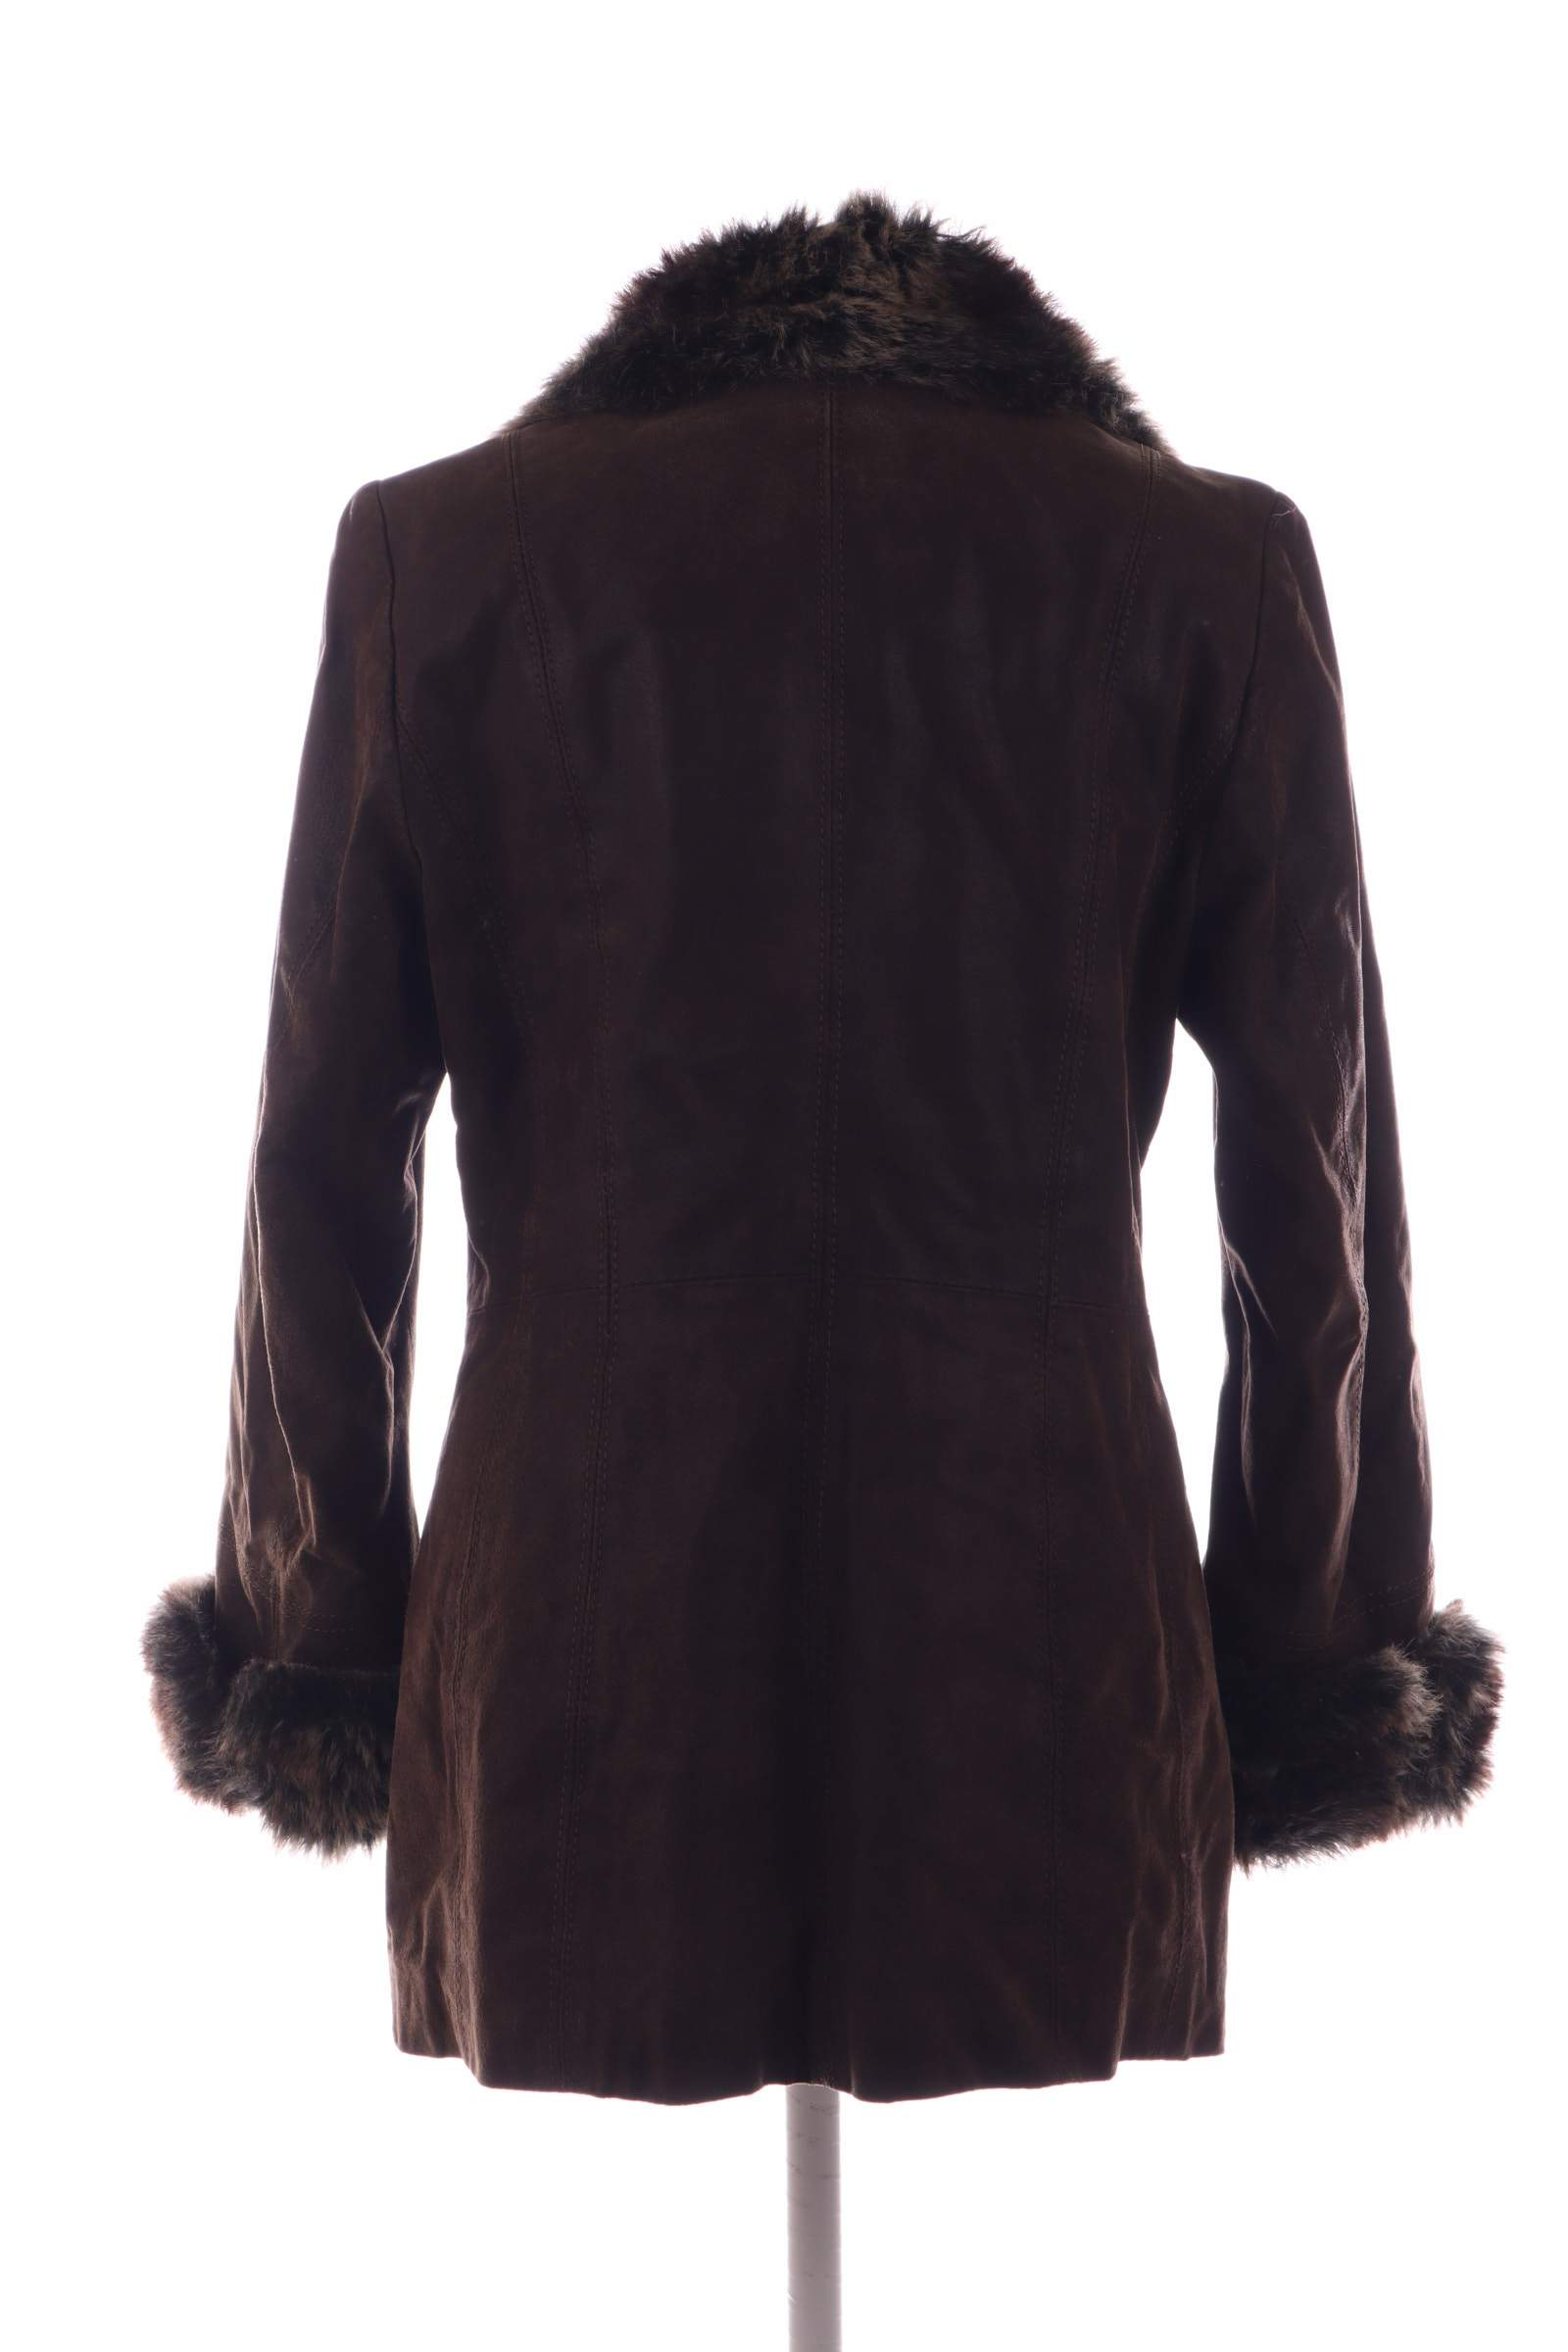 Bigel Brown Coat - upty.store